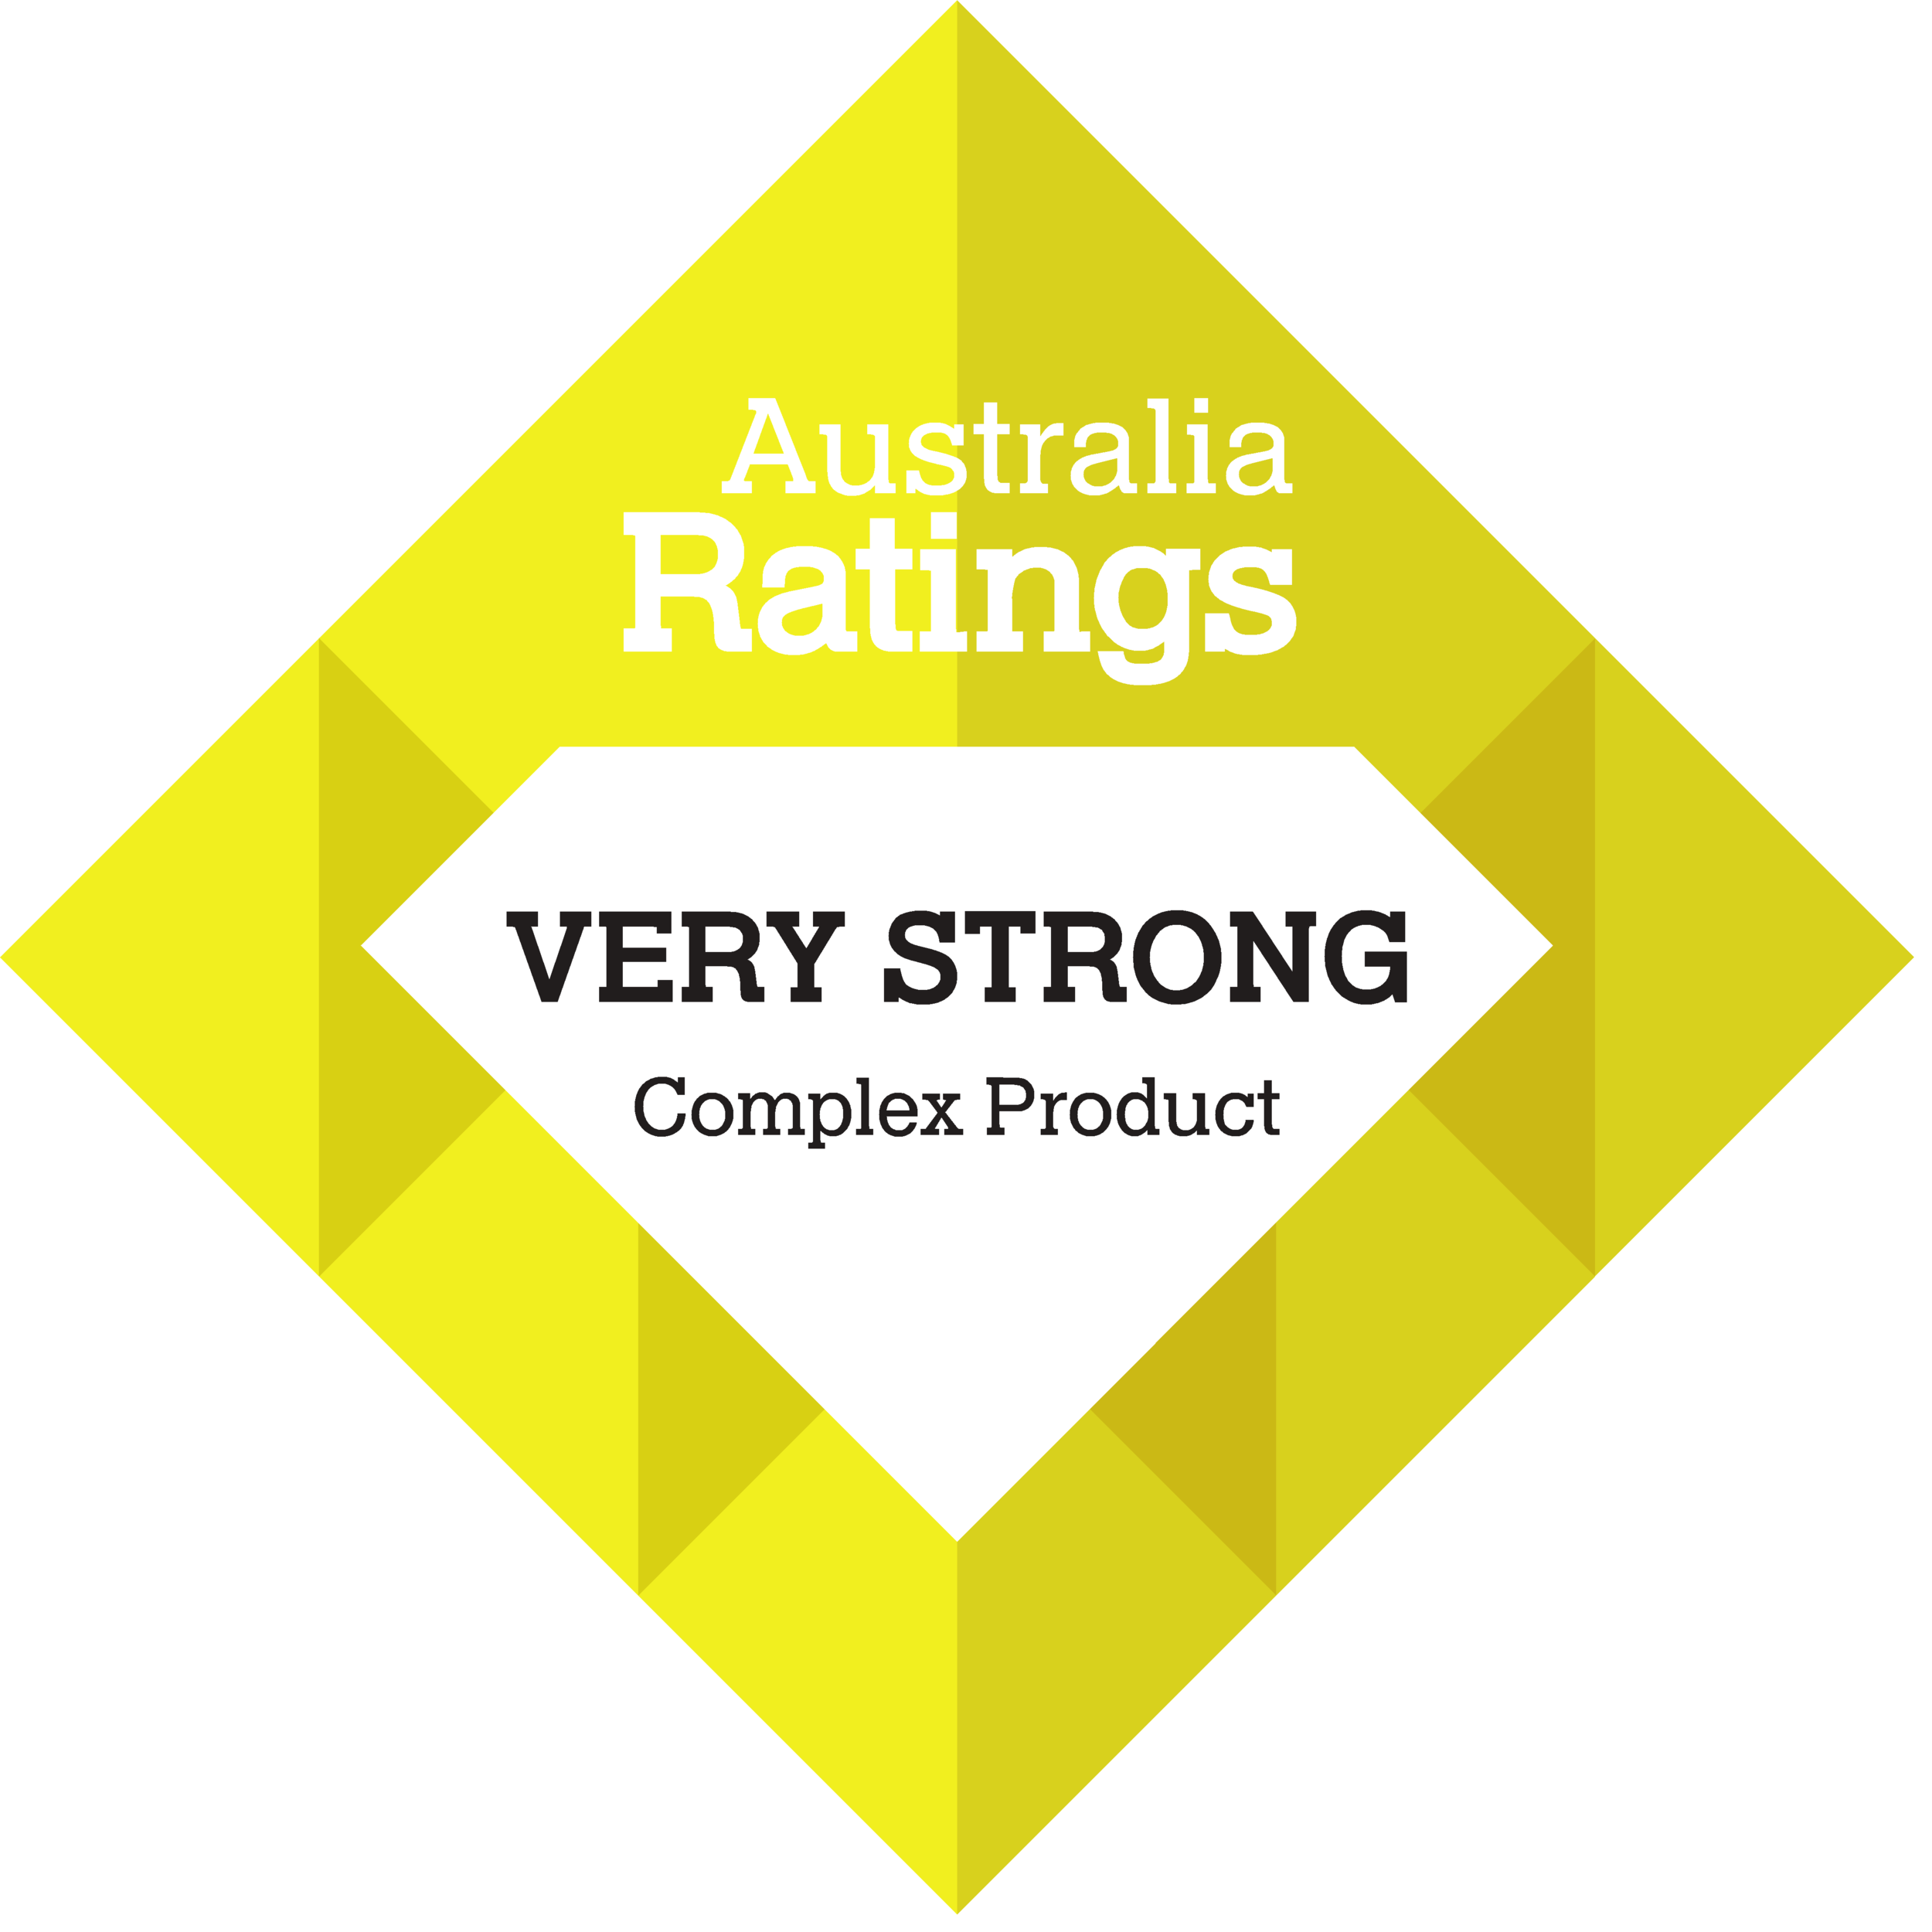 AR_Complex_Product_VERY-STRONG-002.png